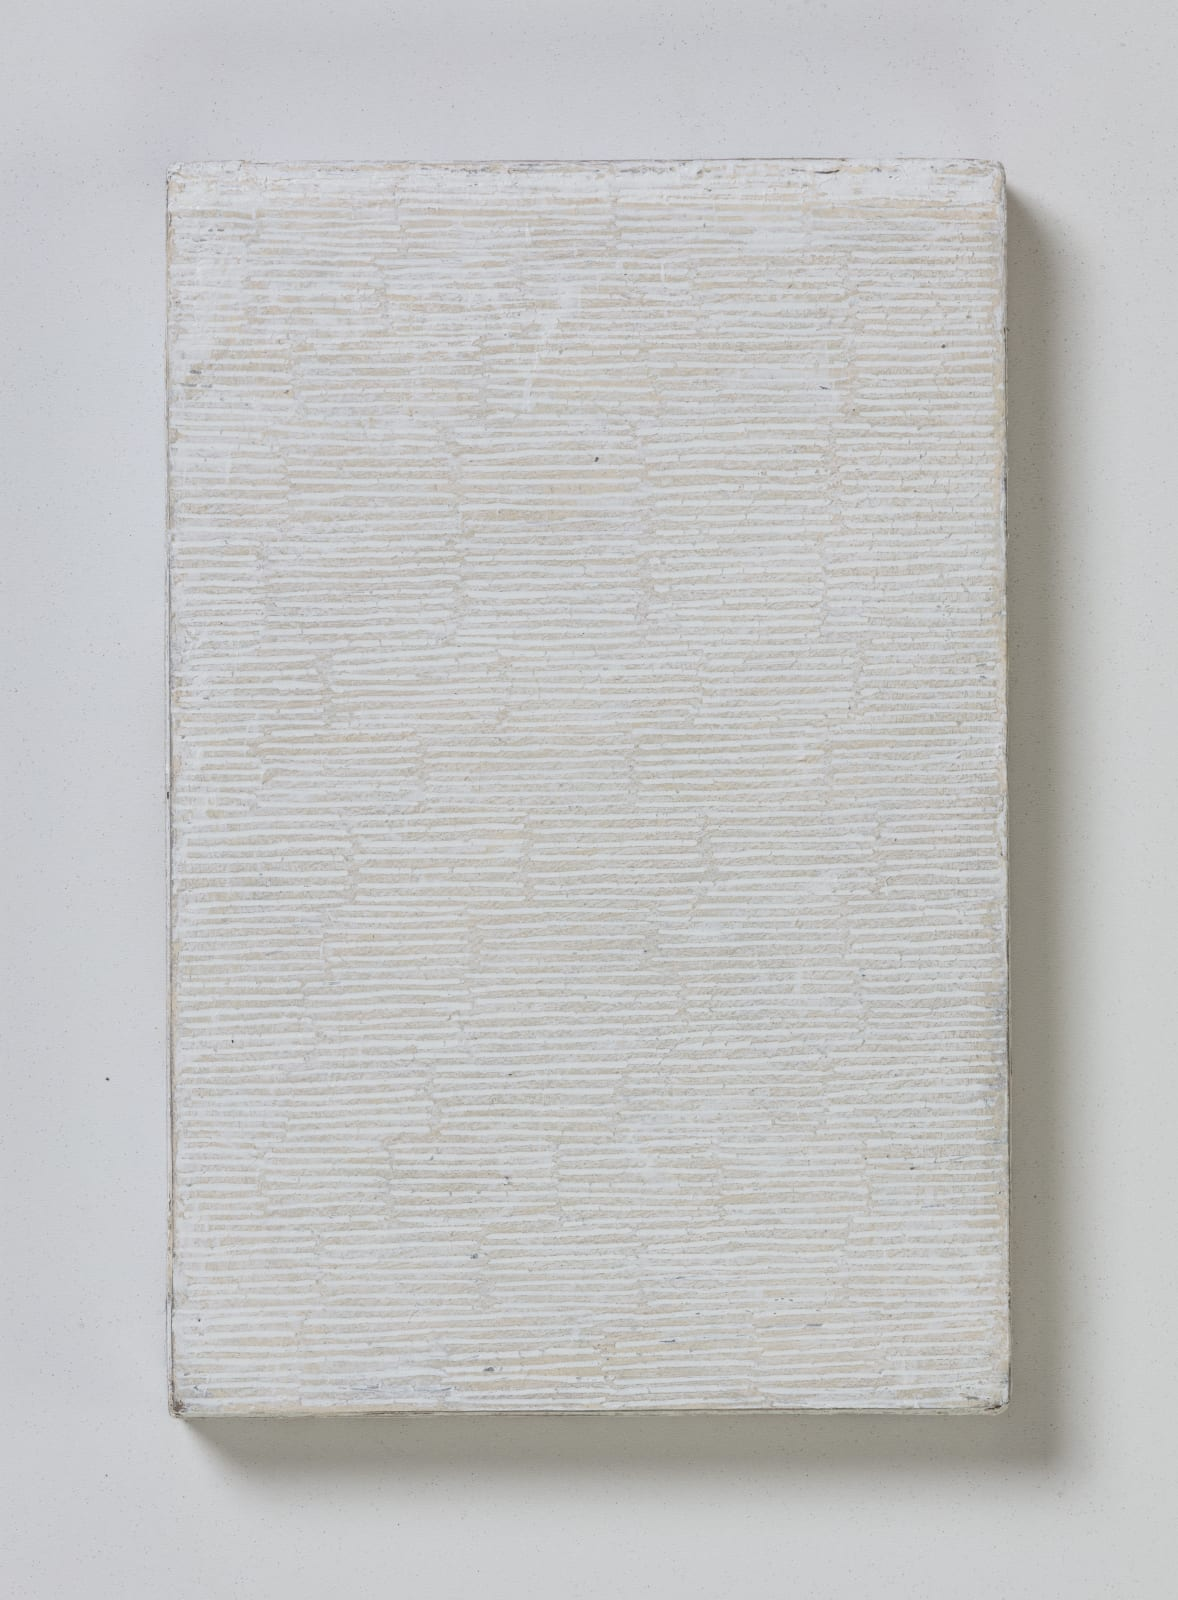 No.1, from flume series, 2020 oil on paper on wood 20.5 x 13.5 cm / 8 x 5.3 in Sold